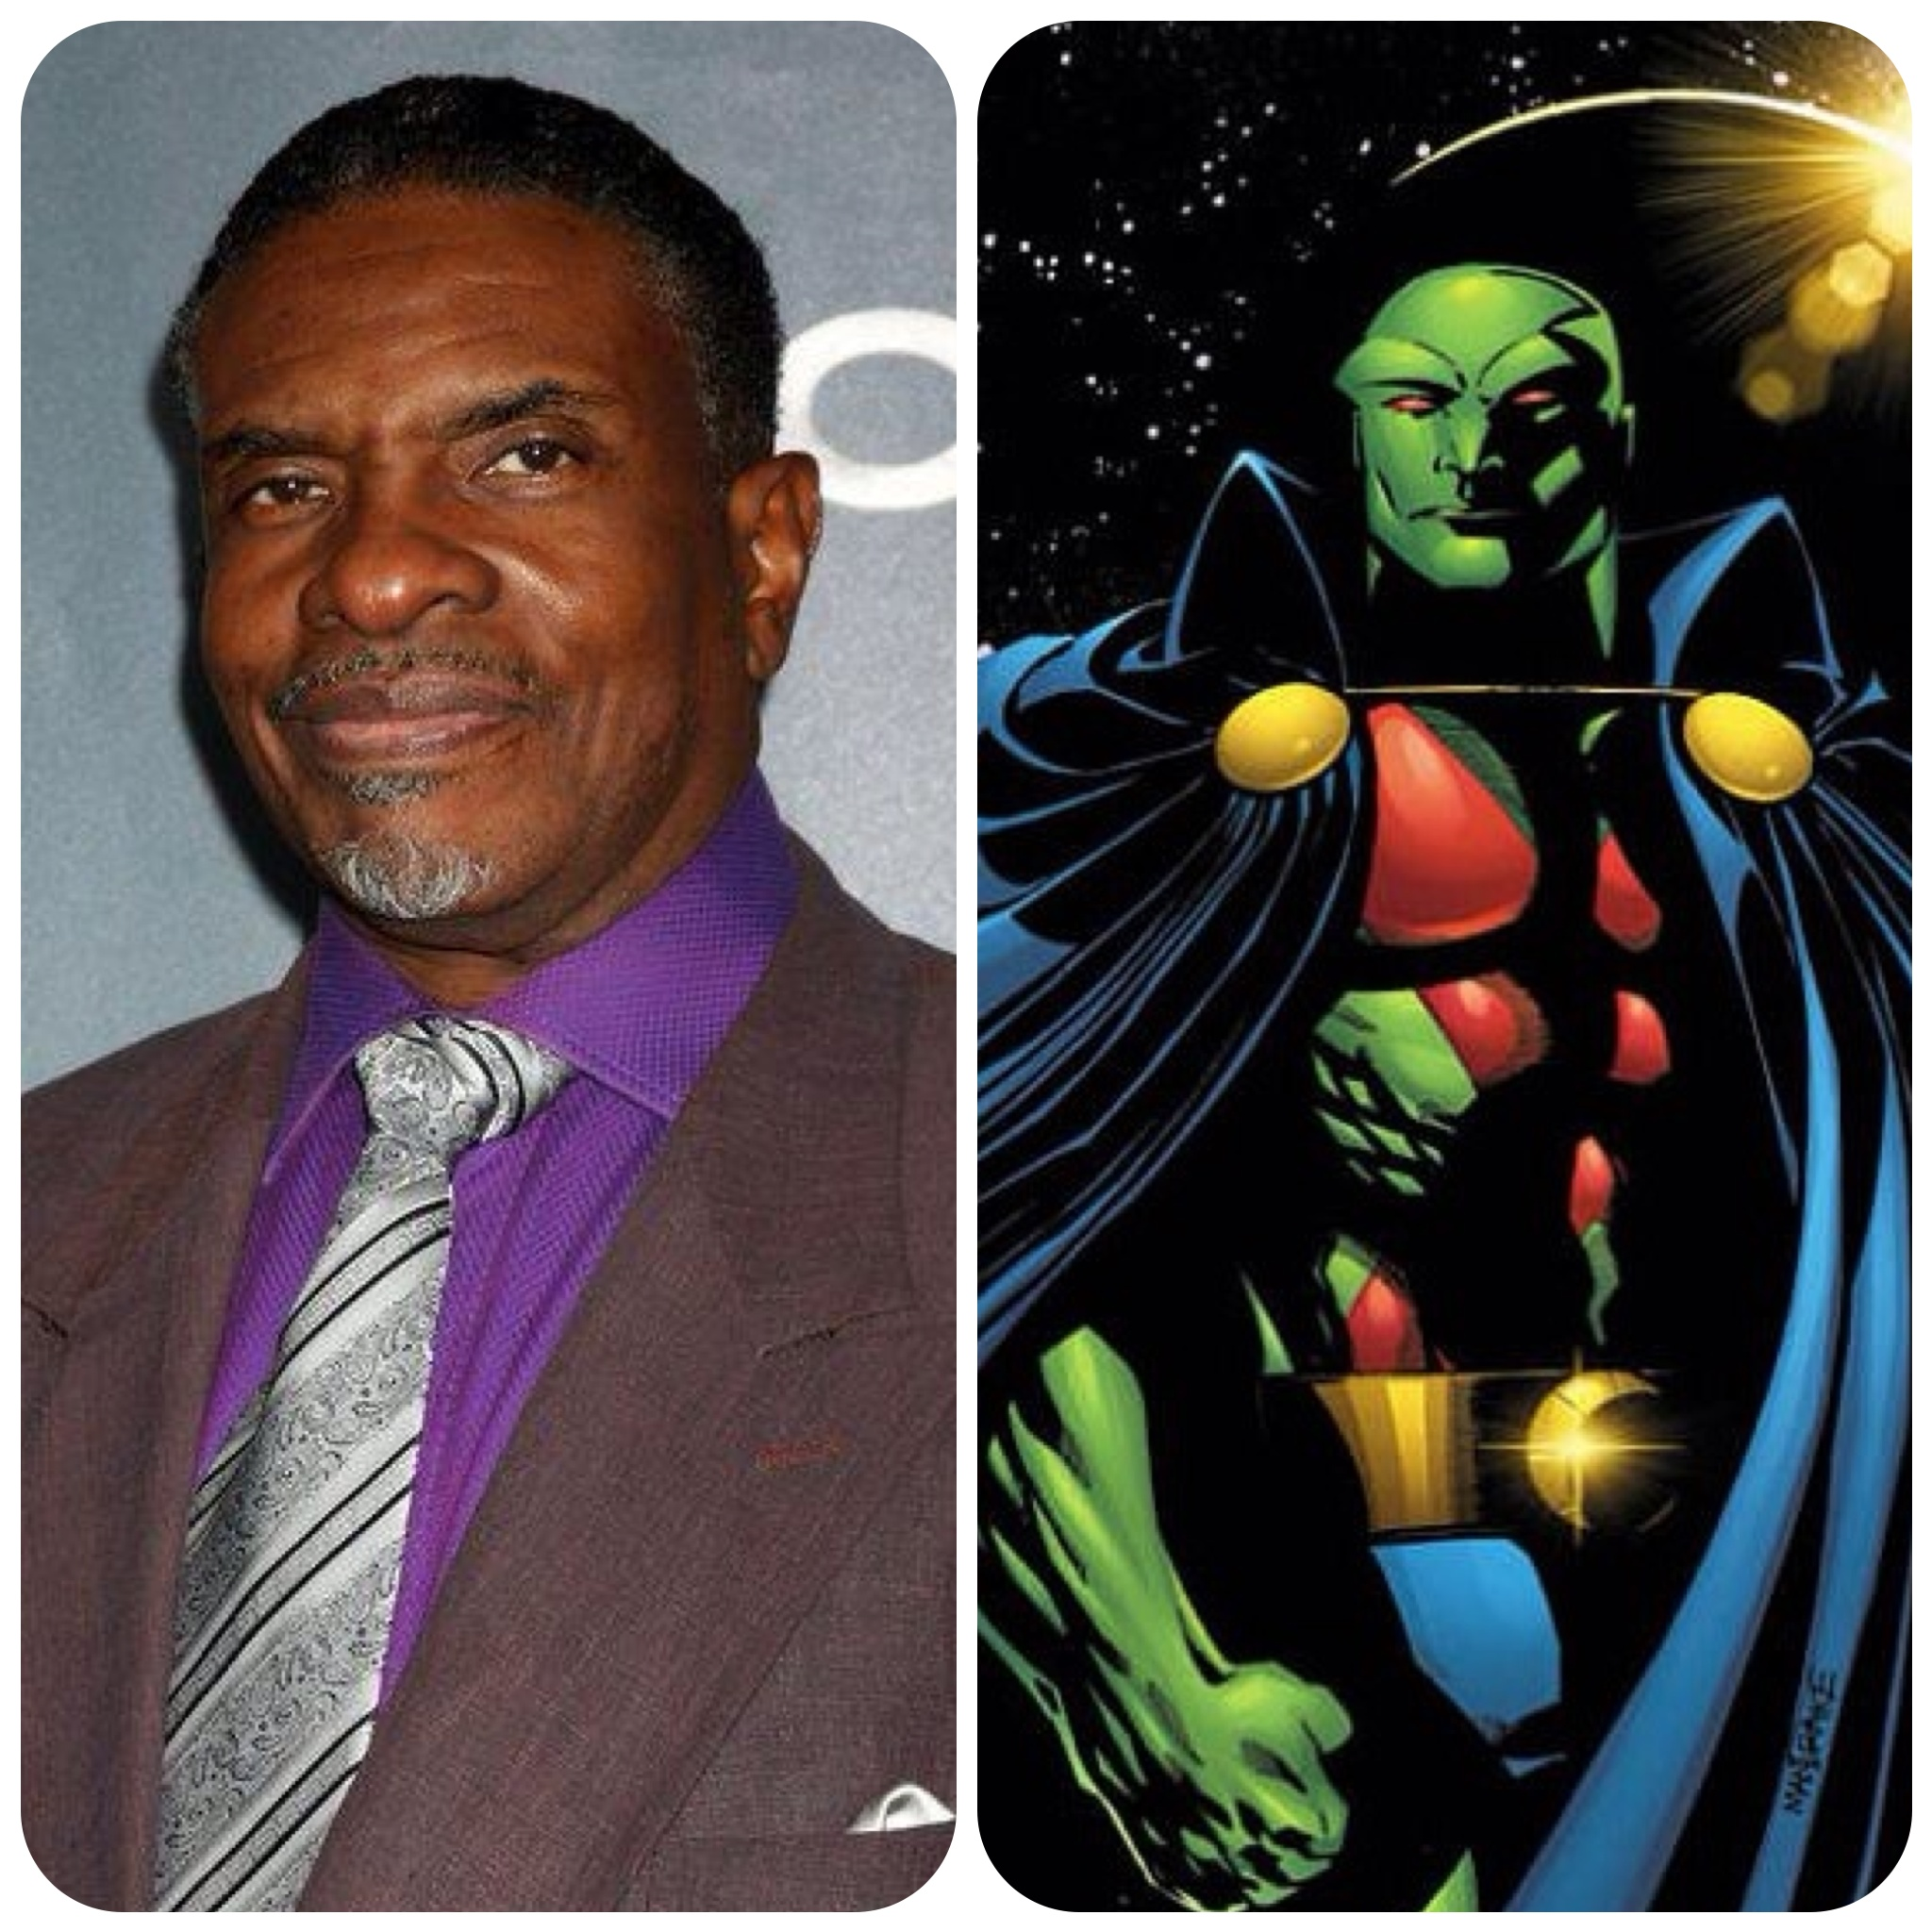 Dreamcasting With Denise Justice League Martian Manhunter J'onn J'onzz Keith David